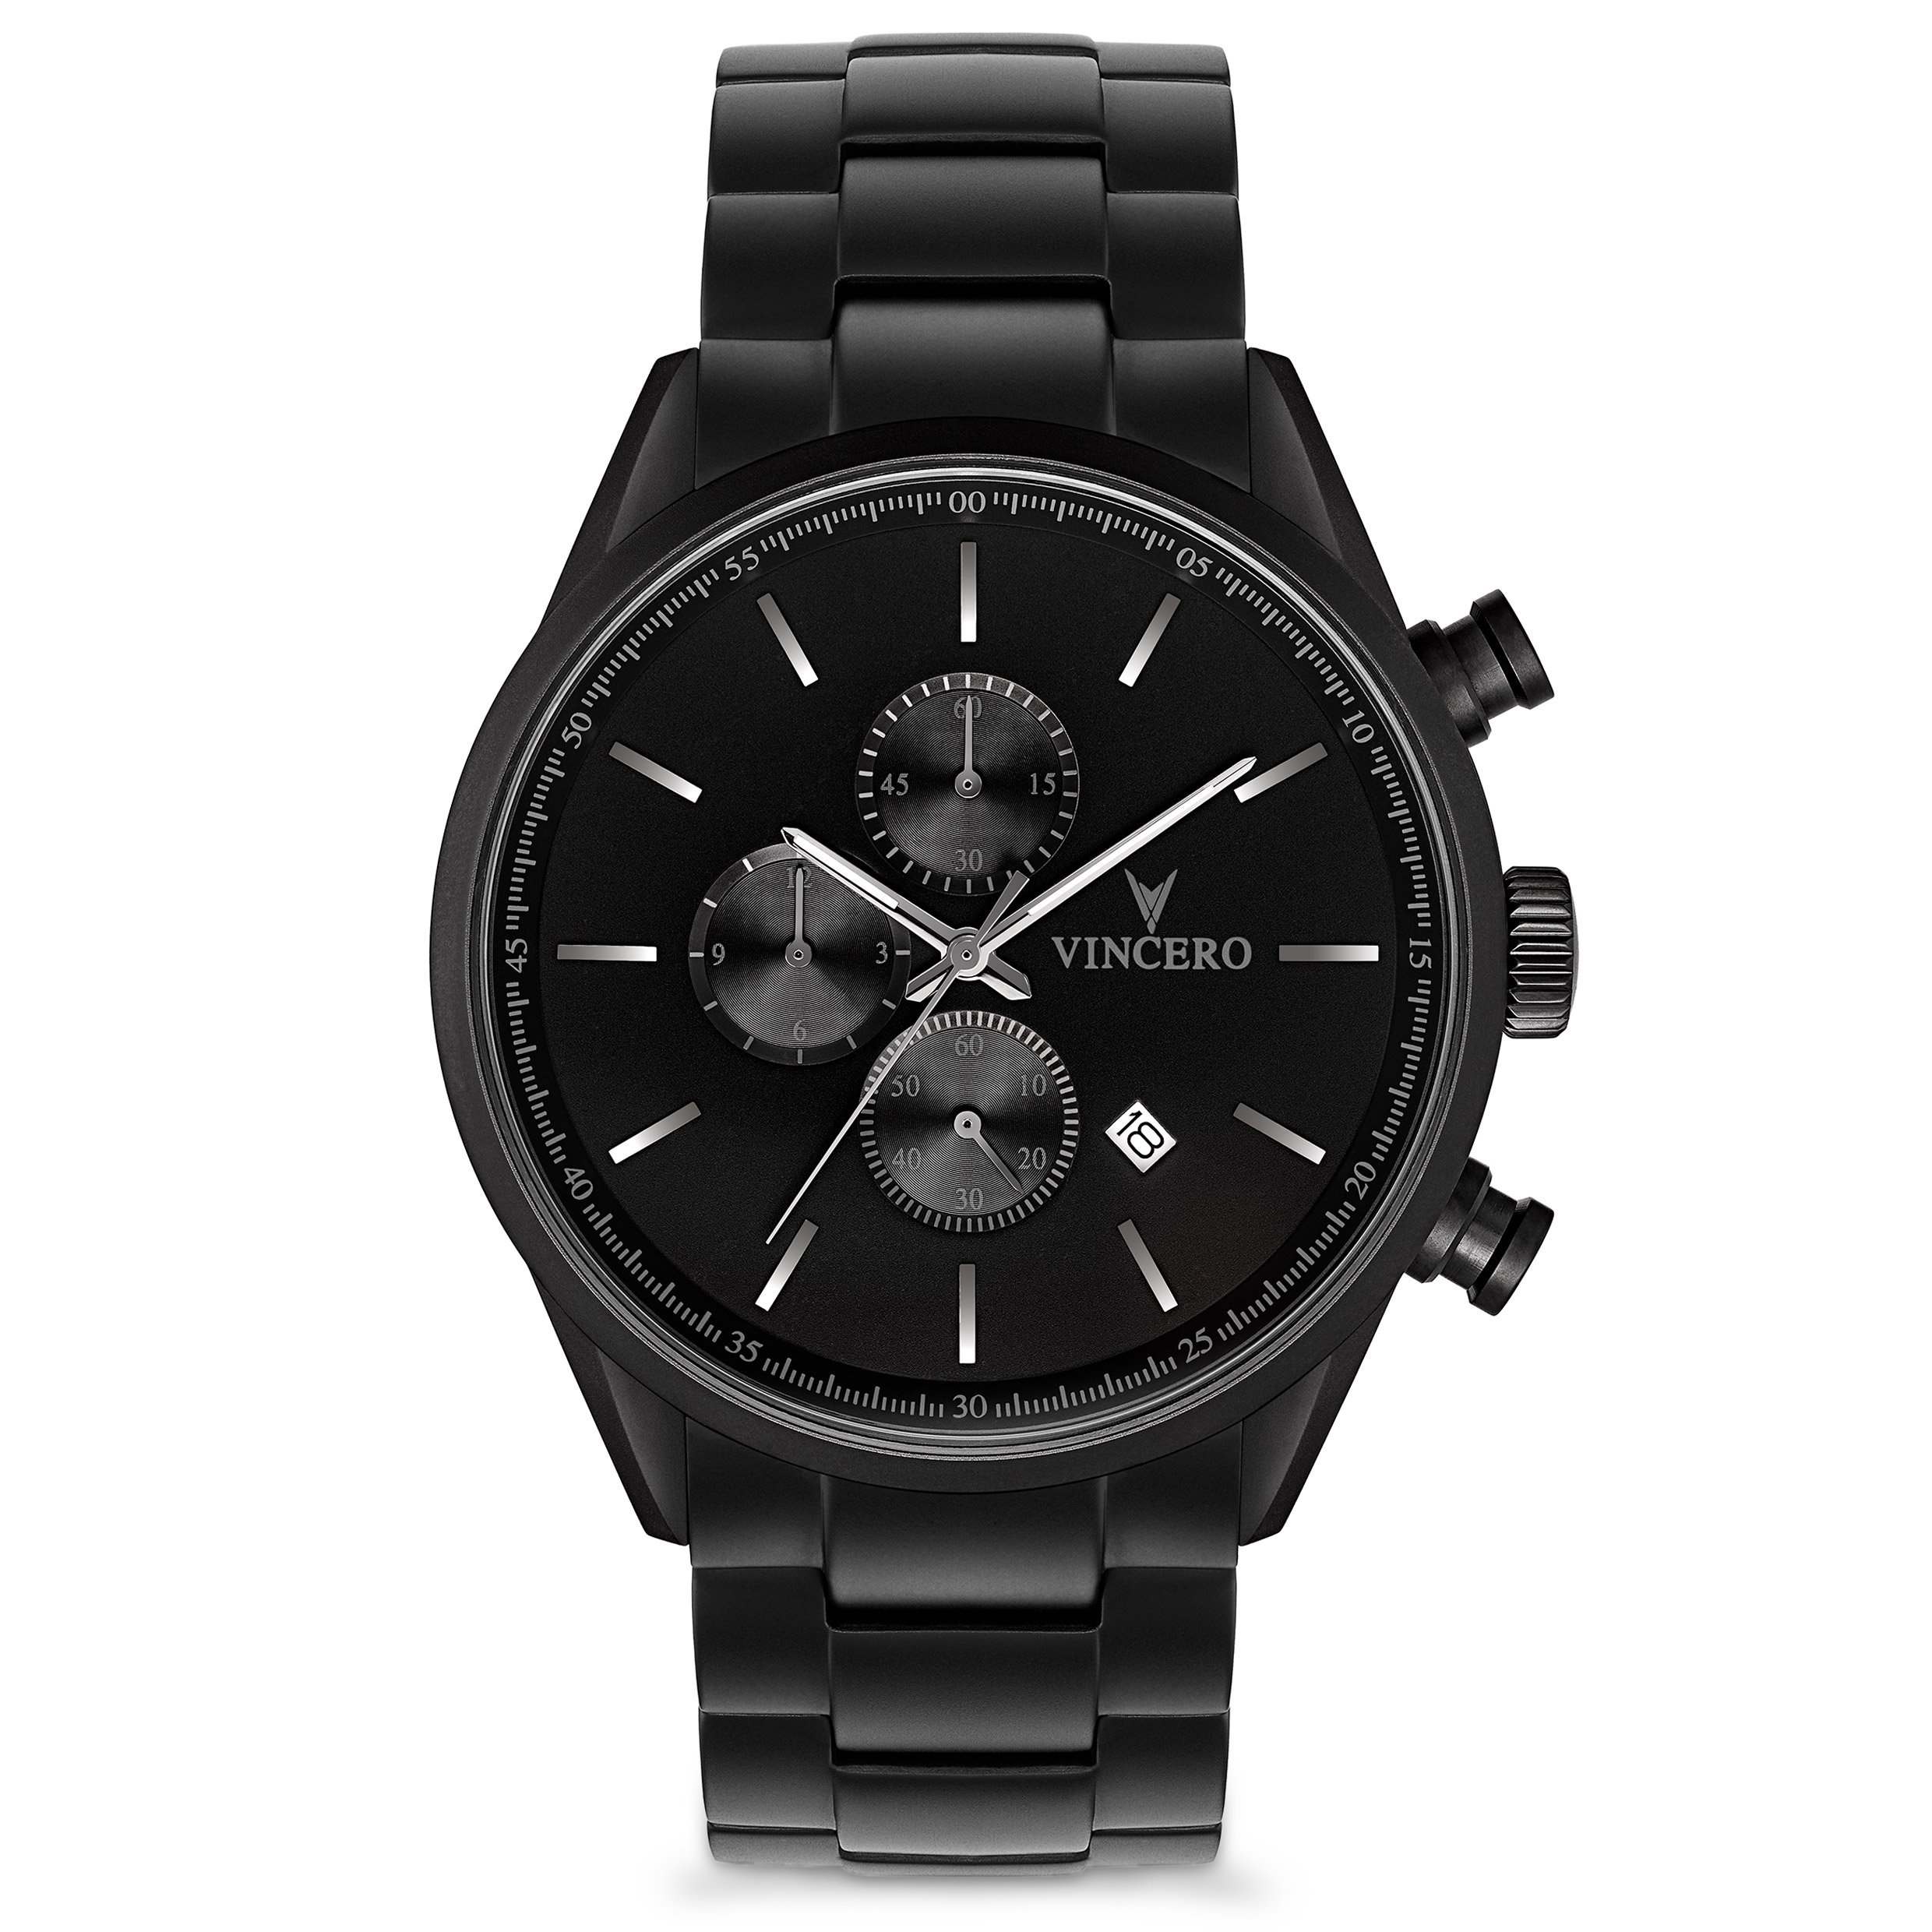 Vincero The Chrono S Black Steel